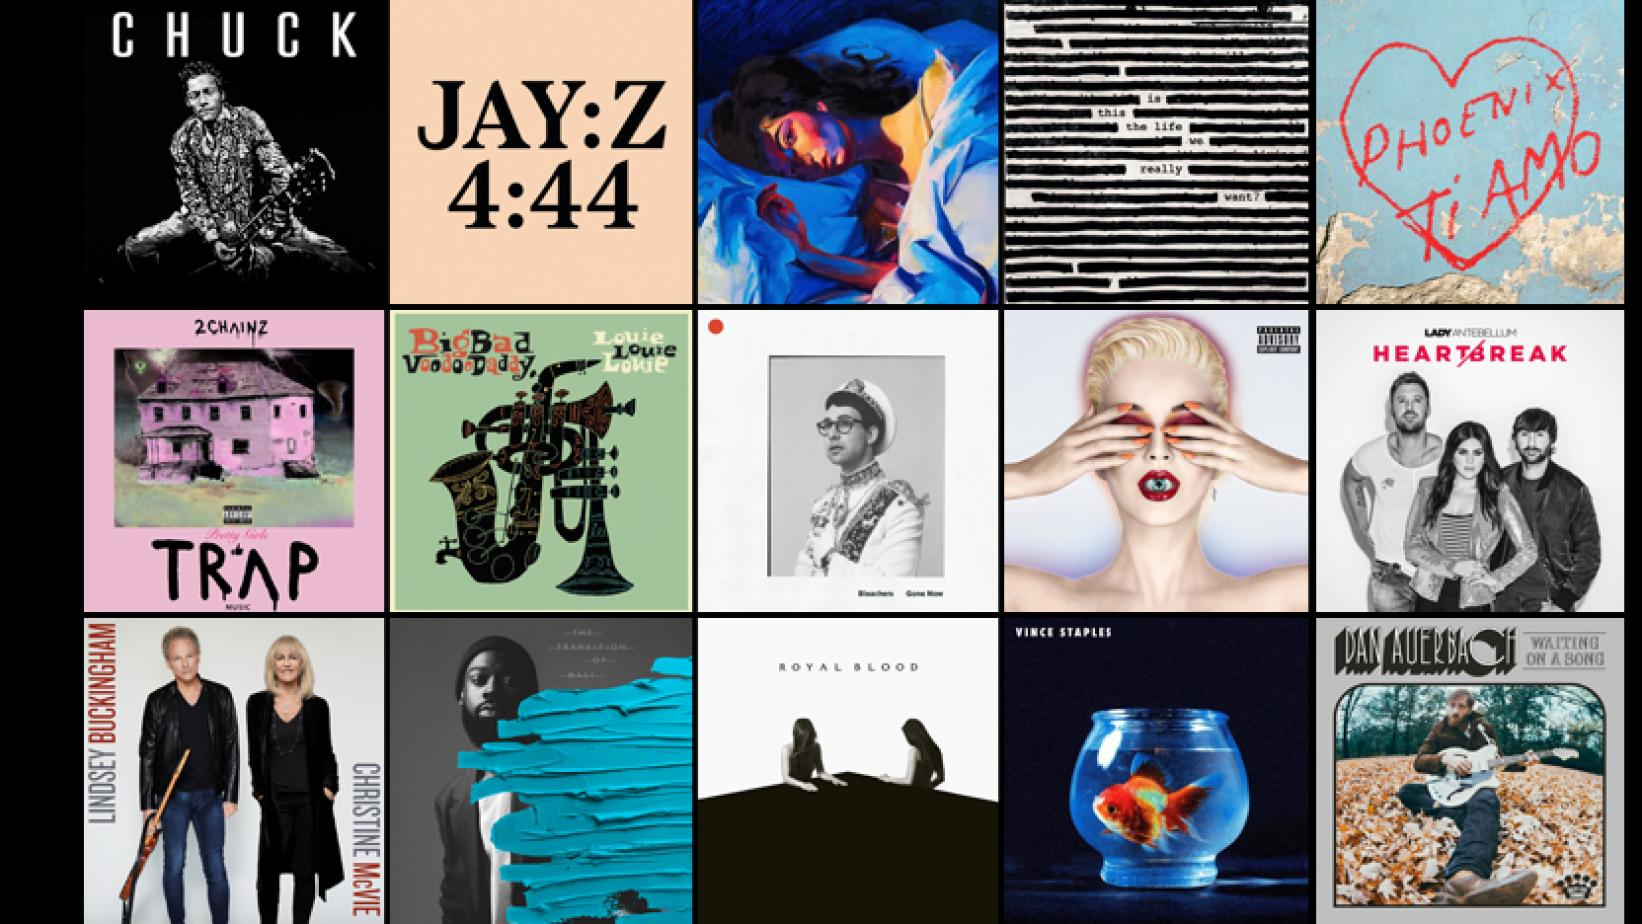 Album covers from new music released in June 2017